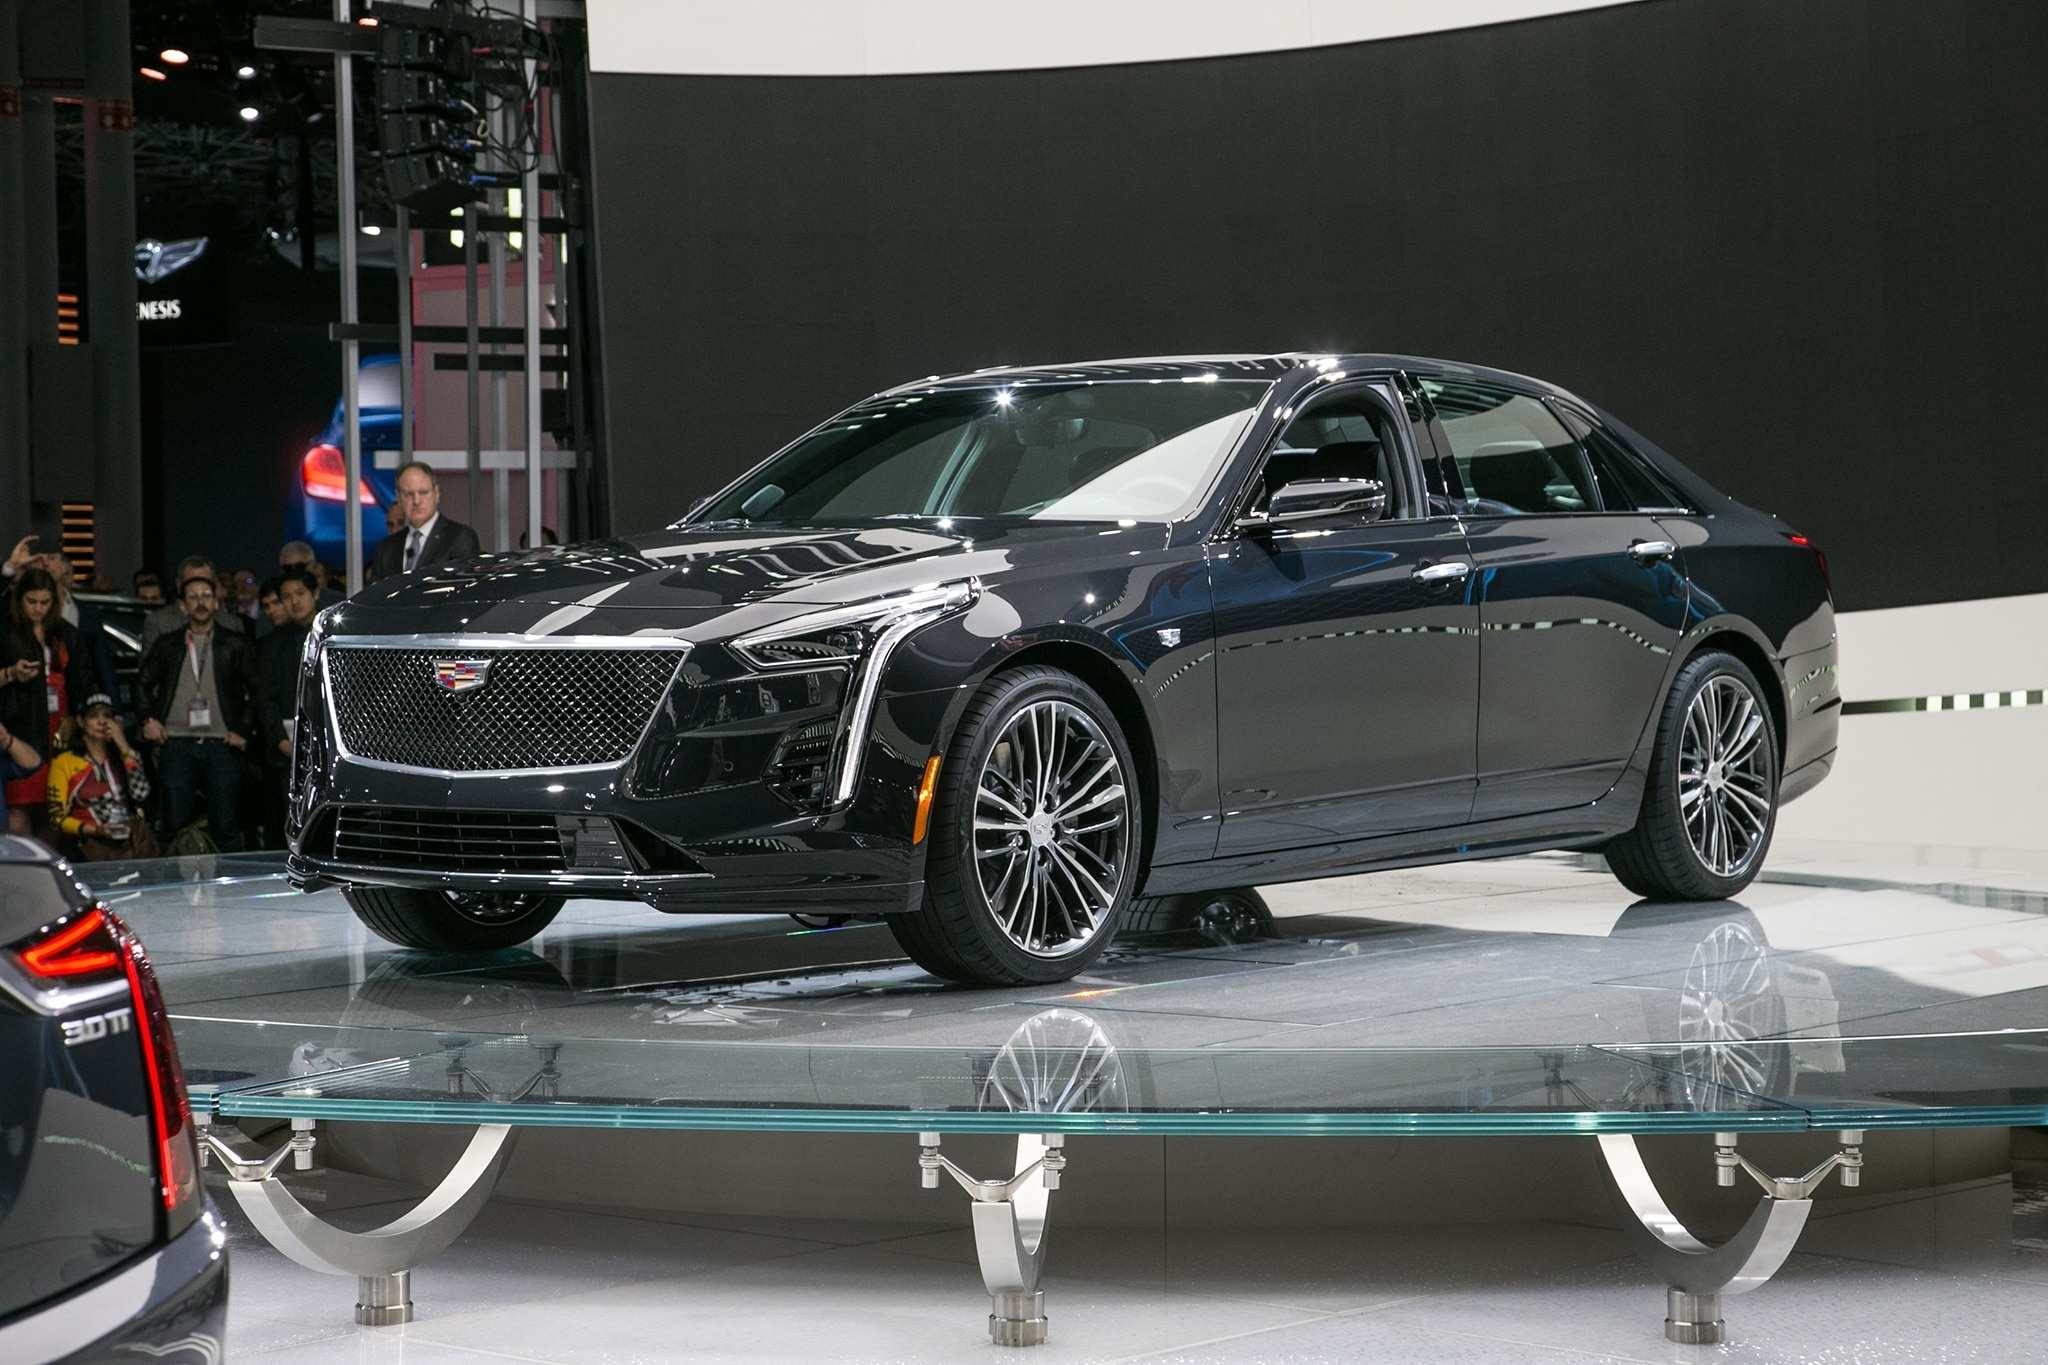 75 The New Cadillac Ct6 V Sport 2019 Picture Release Date And Review Price by New Cadillac Ct6 V Sport 2019 Picture Release Date And Review